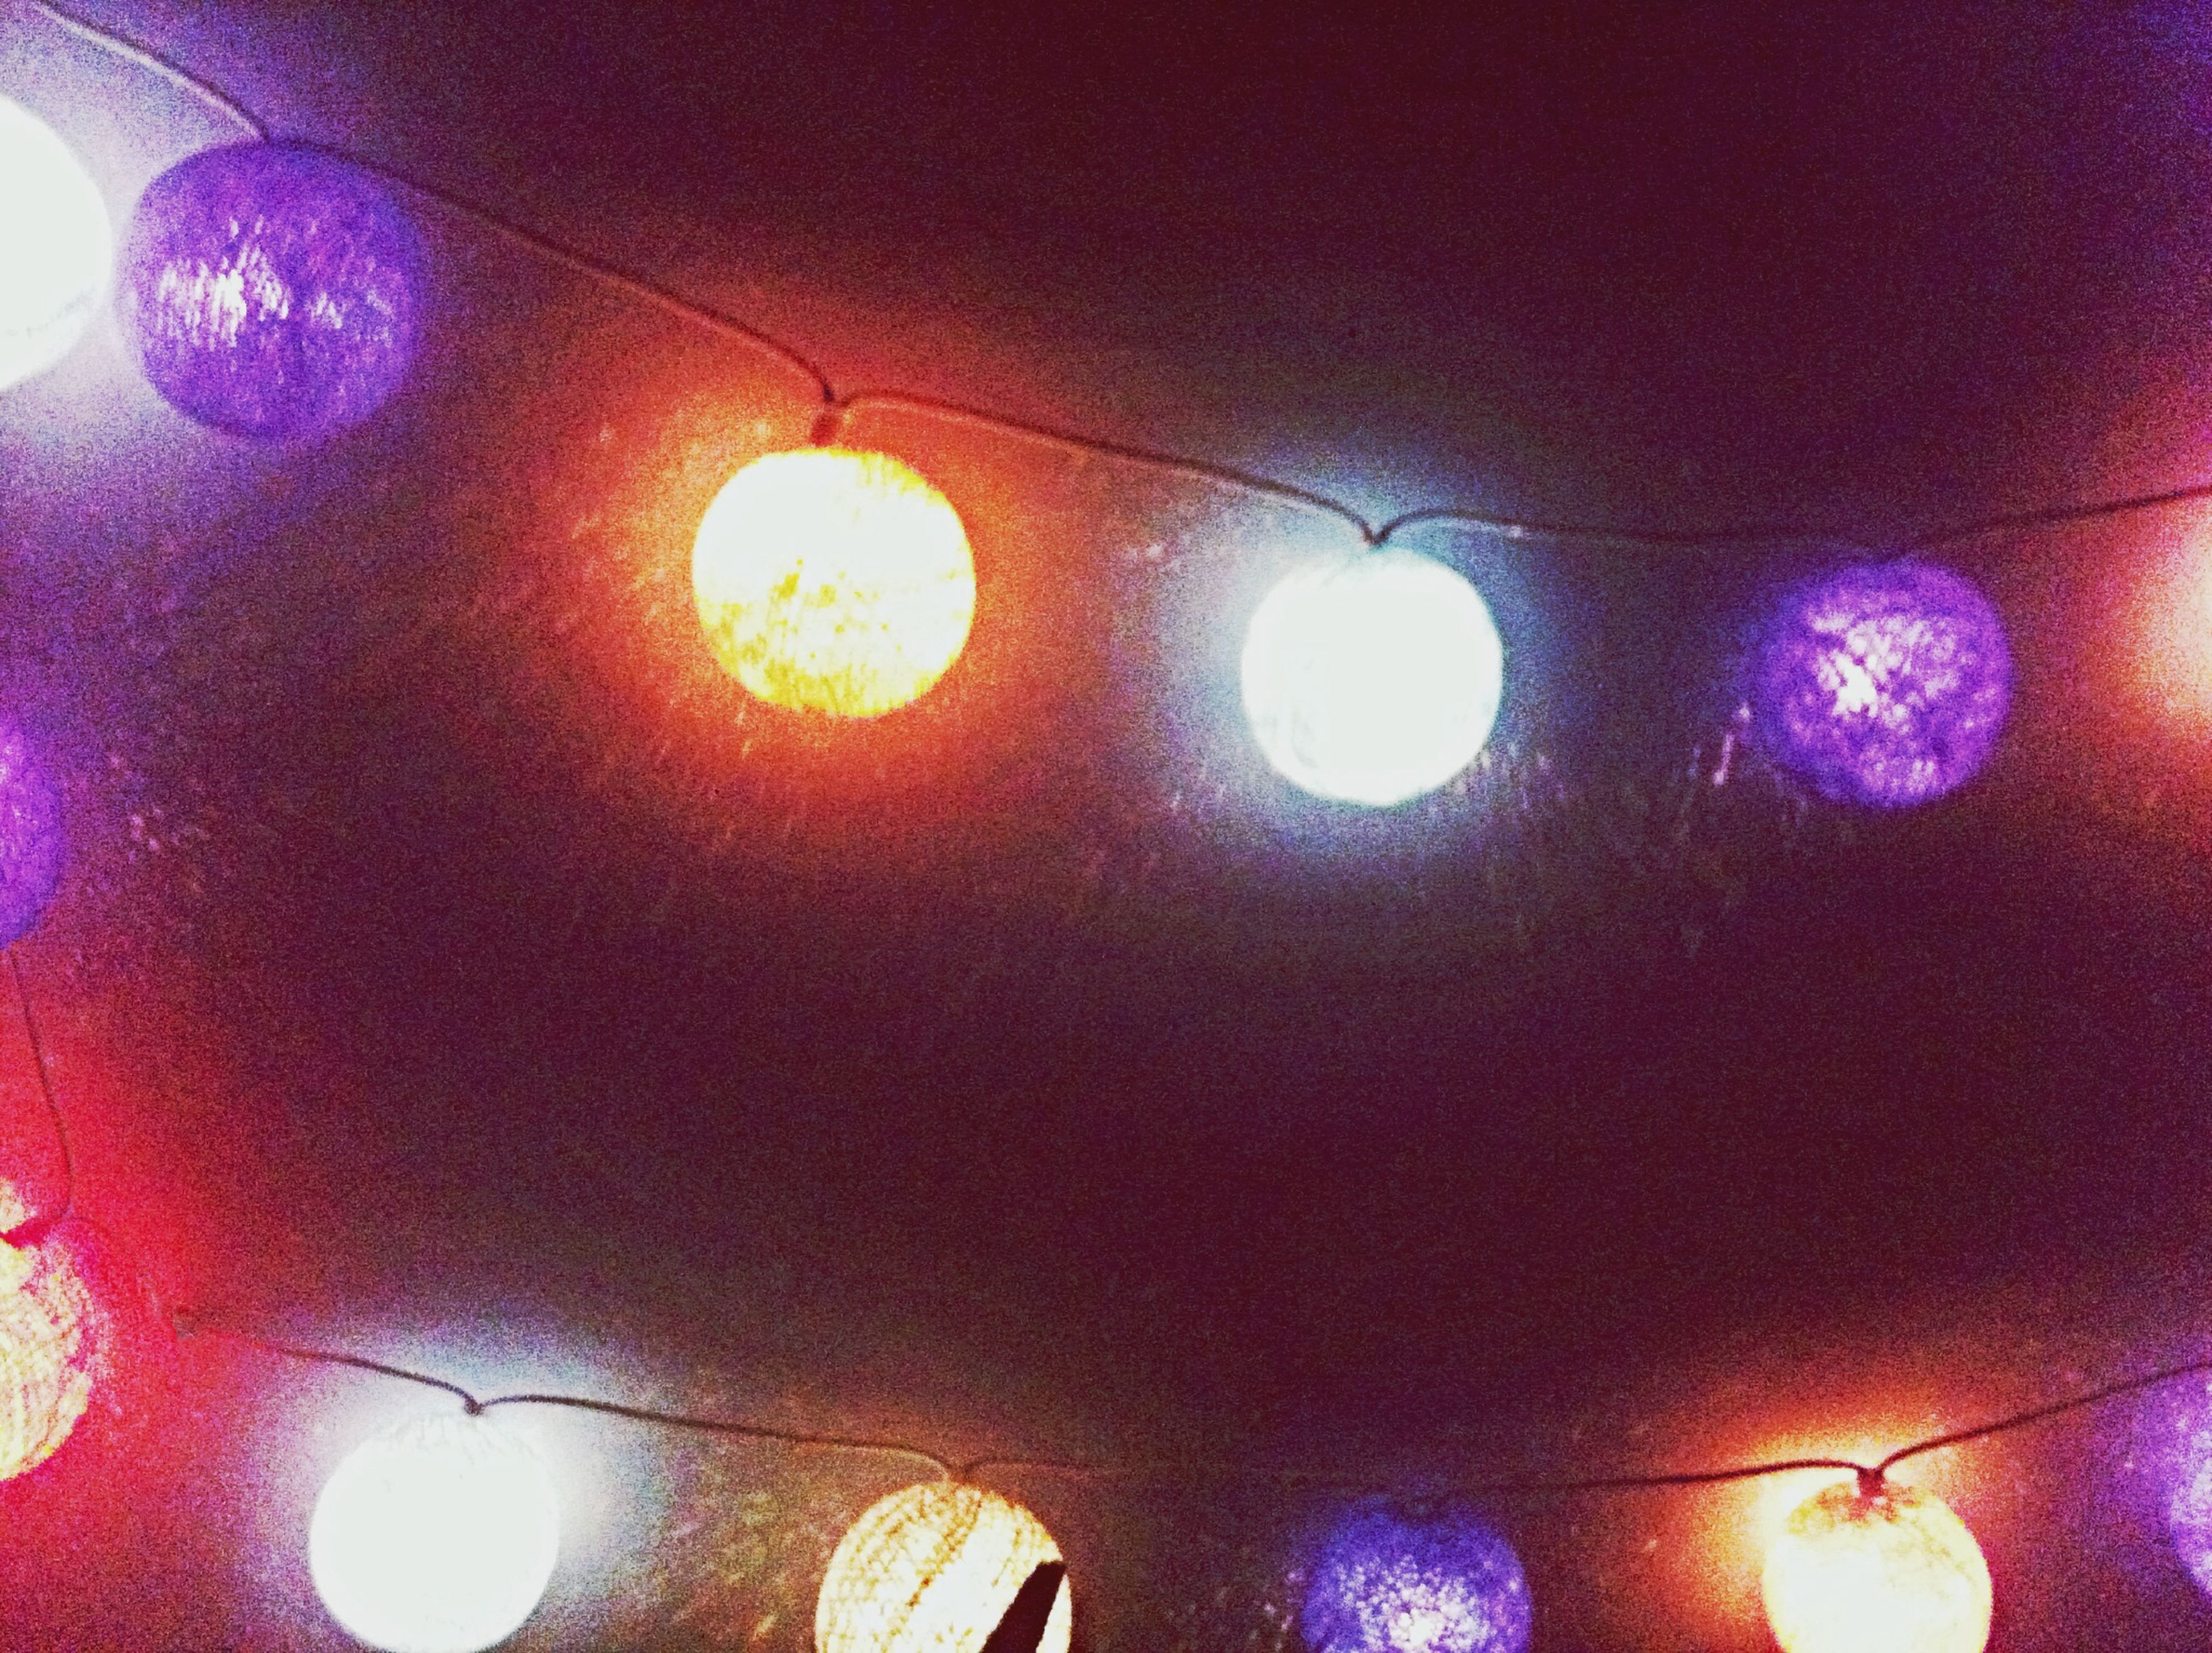 indoors, illuminated, lighting equipment, ceiling, low angle view, decoration, pattern, multi colored, electric light, hanging, circle, electricity, wall - building feature, light - natural phenomenon, design, backgrounds, glowing, no people, electric lamp, built structure